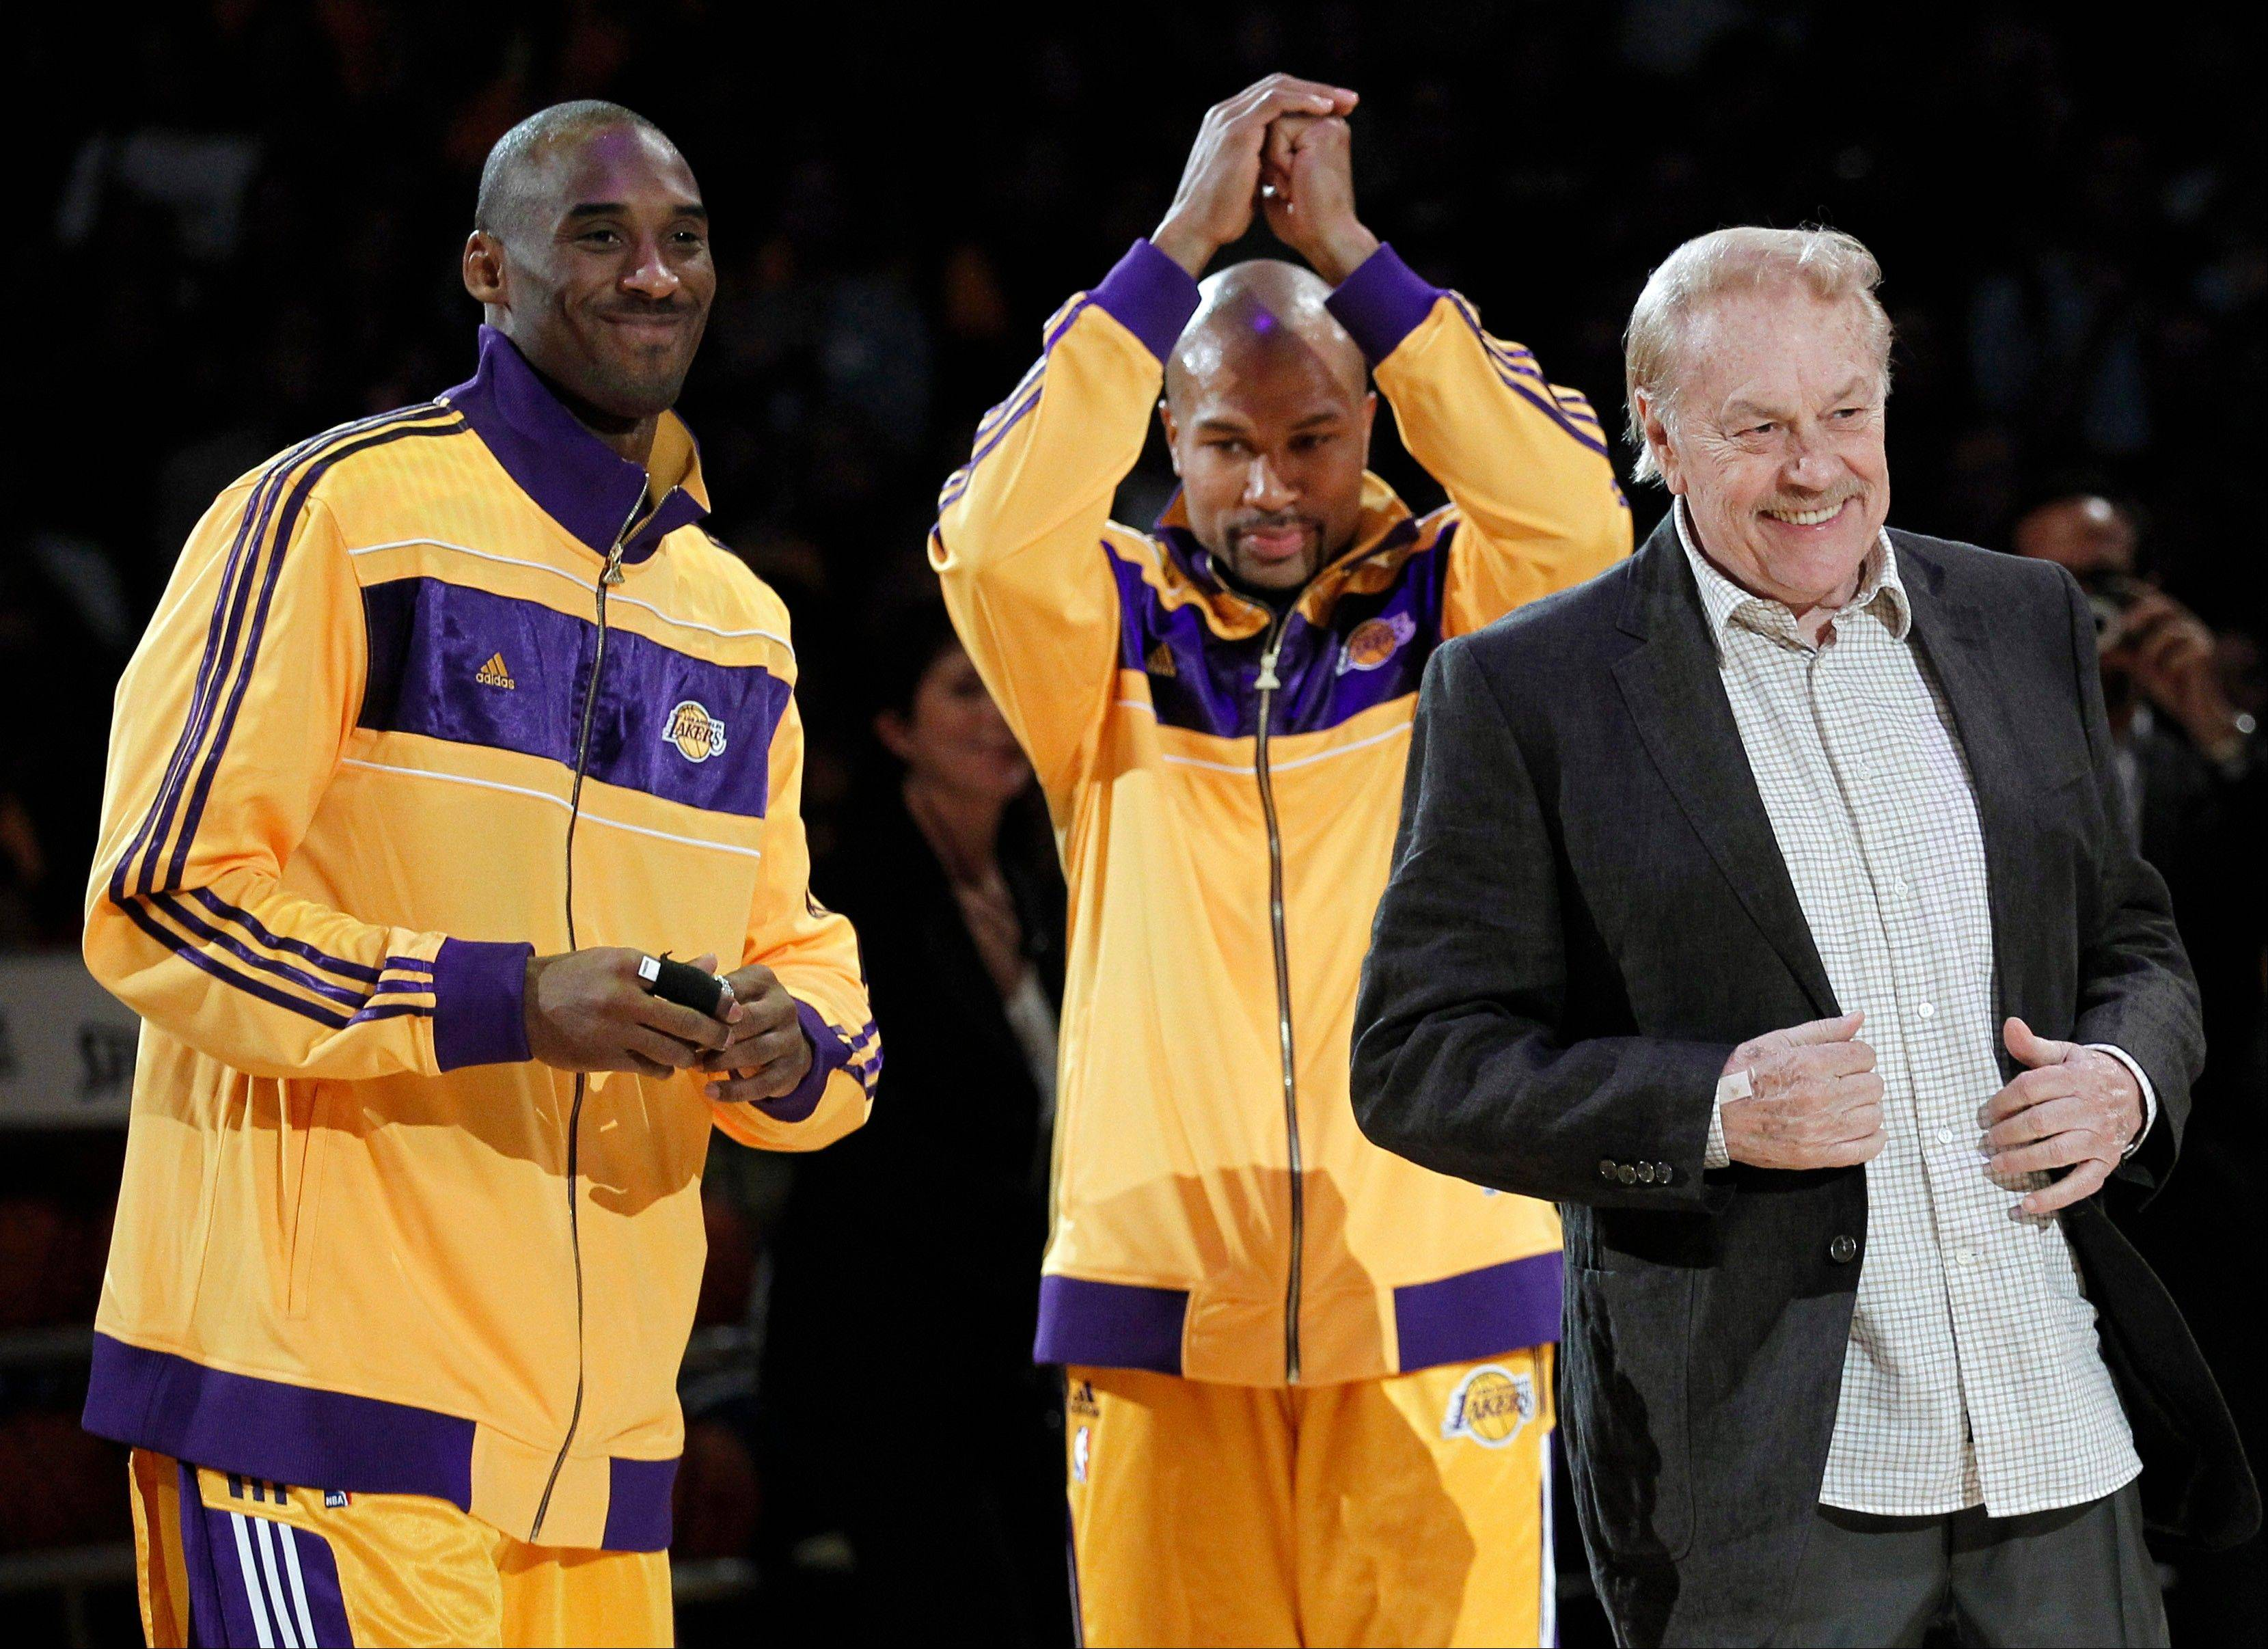 Los Angeles Laker owner Jerry Buss, right, walks out onto the court during the NBA championship ring ceremony as Kobe Bryant, left, and Derek Fisher look on. Buss, the Lakers� playboy owner who shepherded the NBA franchise to 10 championships, has died. He was 80. Bob Steiner, an assistant to Buss, confirmed Monday that Buss had died in Los Angeles.